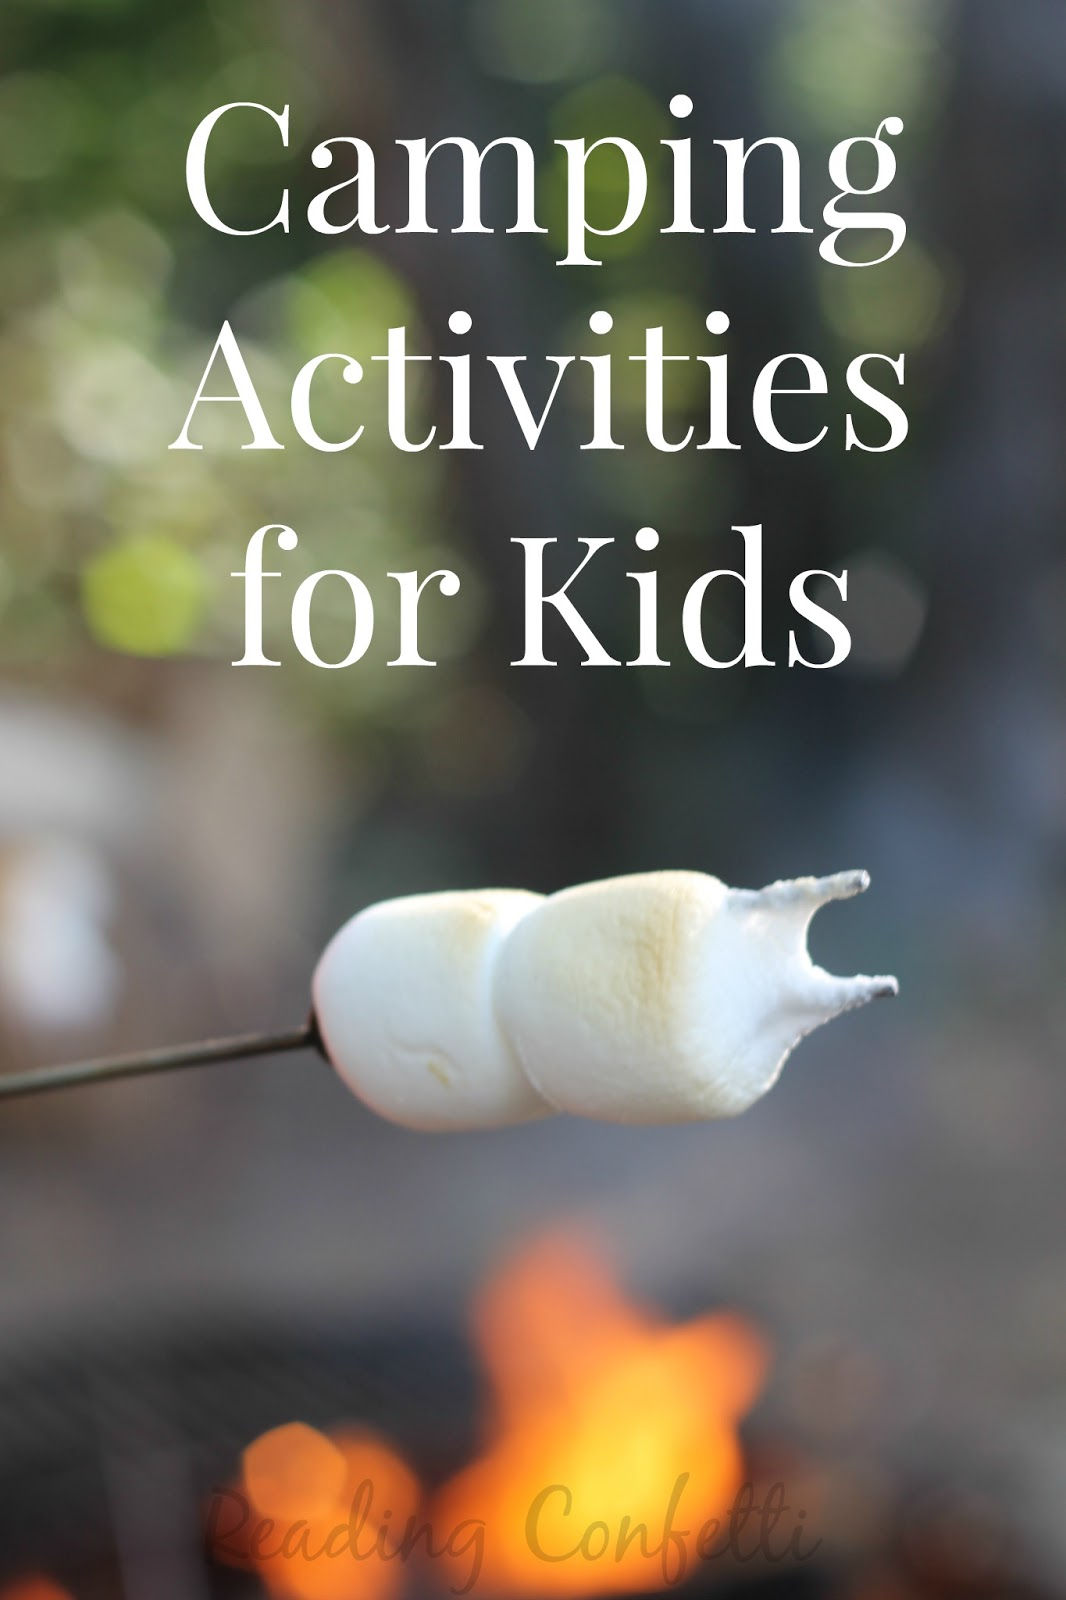 15 camping activities for kids